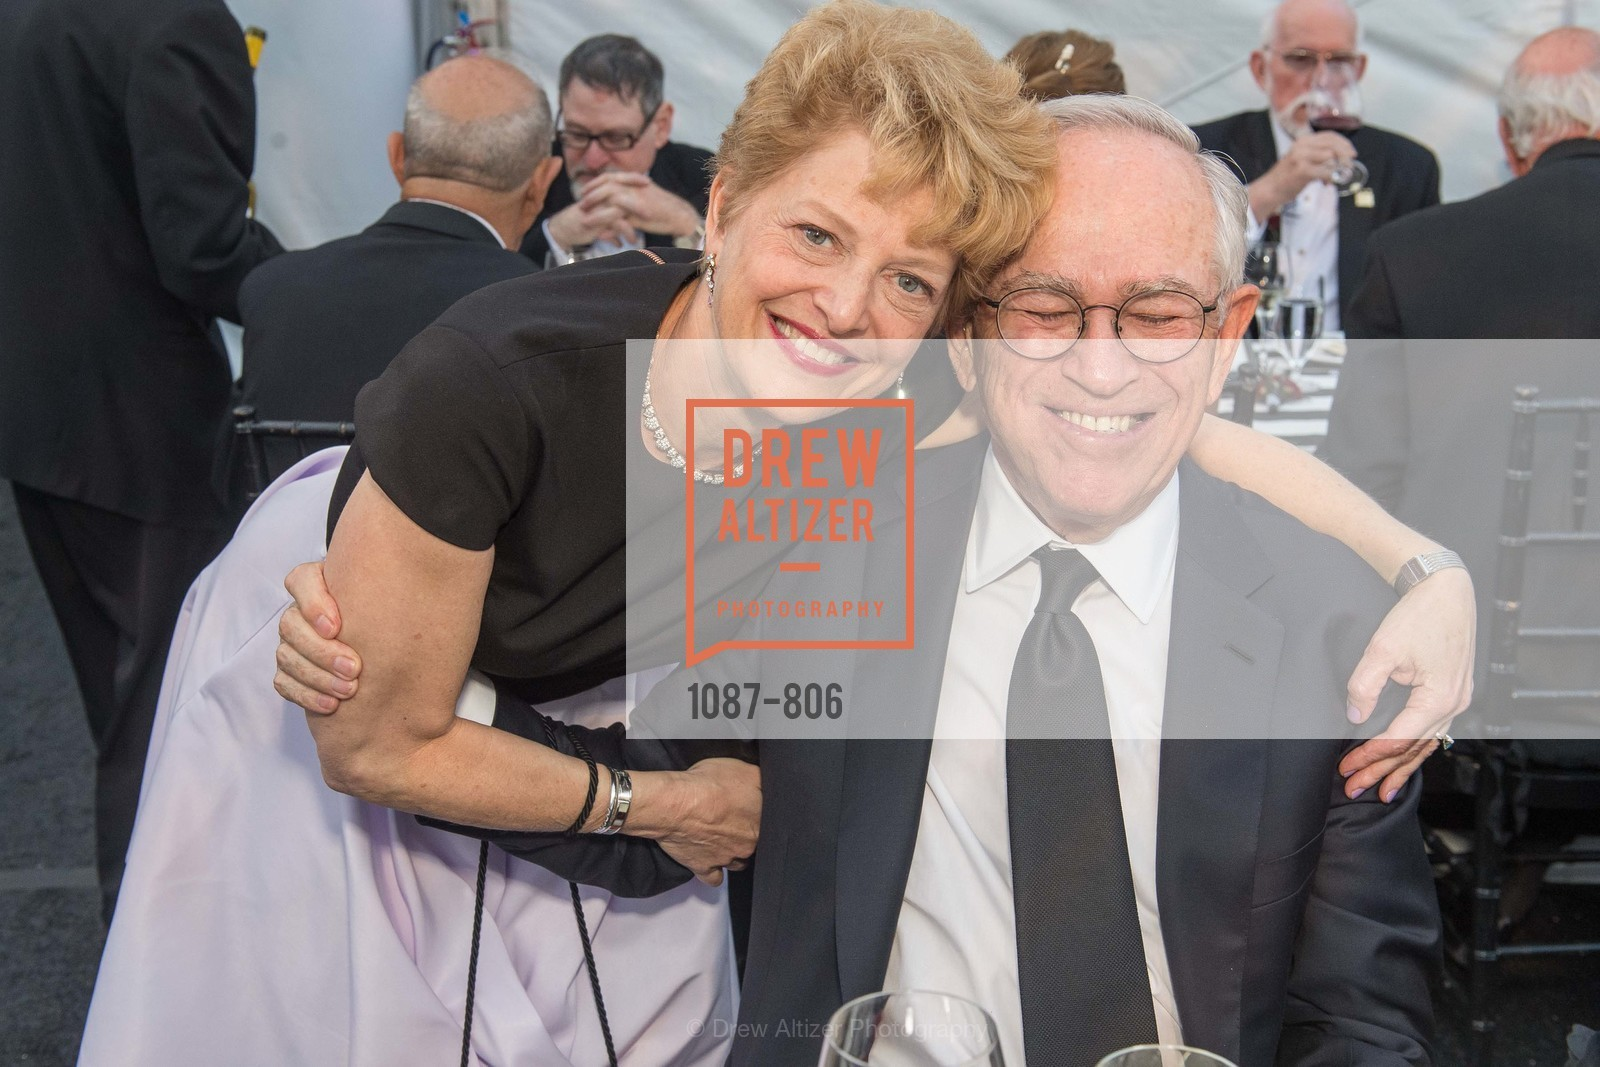 Carey Perloff, A.C.T. Gala Come Get Stranded, US, April 26th, 2015,Drew Altizer, Drew Altizer Photography, full-service agency, private events, San Francisco photographer, photographer california